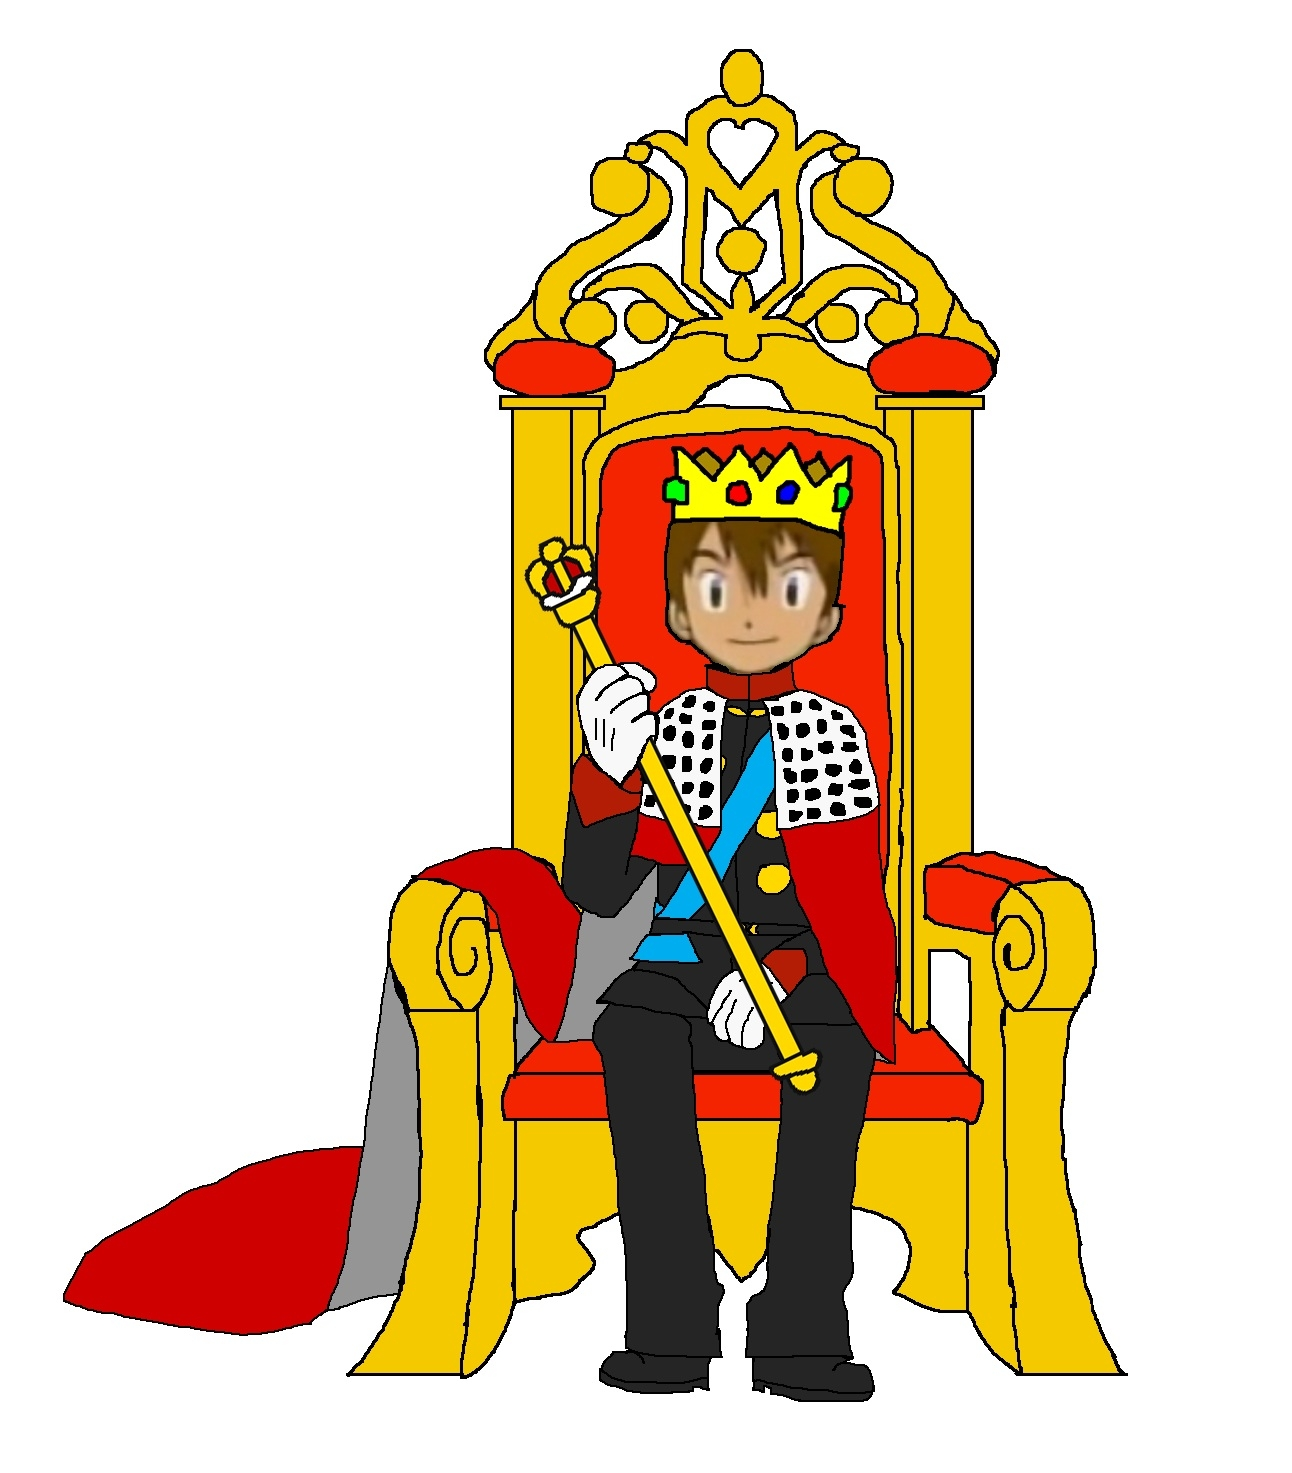 Throne clipart fancy chair. Chairs king on drawing